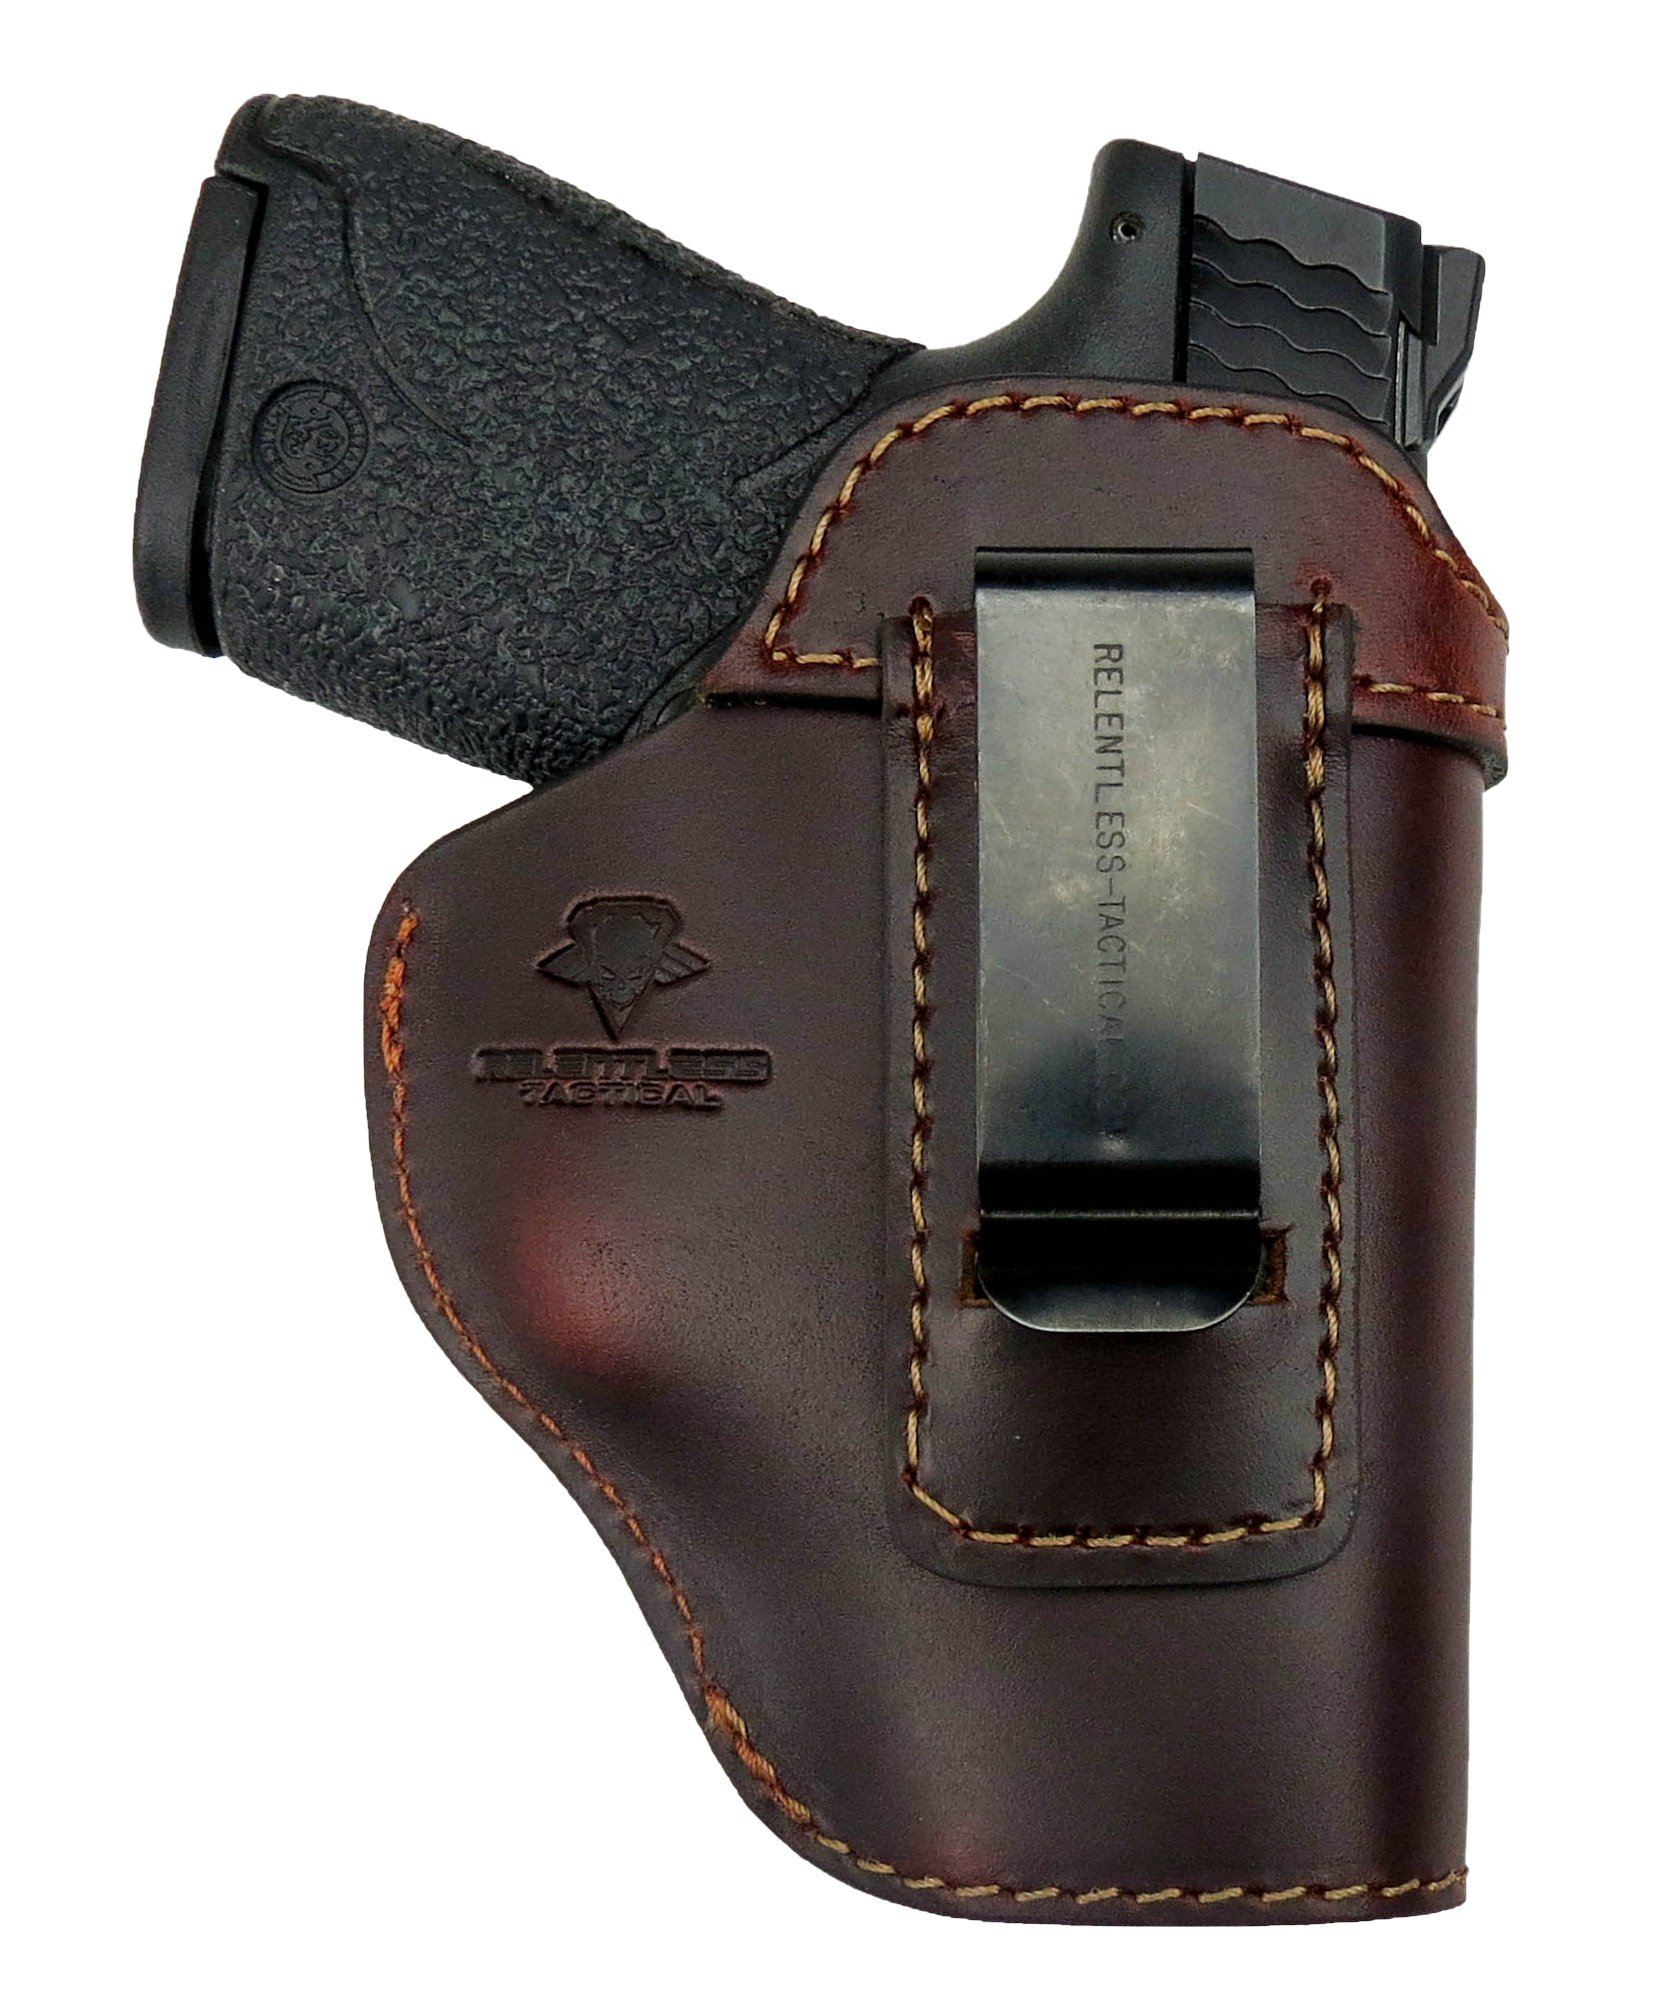 Relentless Tactical The Defender Leather IWB Holster - Made in USA - For S&W M&P Shield - GLOCK 17 19 22 23 32 33/Springfield XD & XDS/Plus All Similar Sized Handguns – Brown – Right Handed by Relentless Tactical (Image #3)